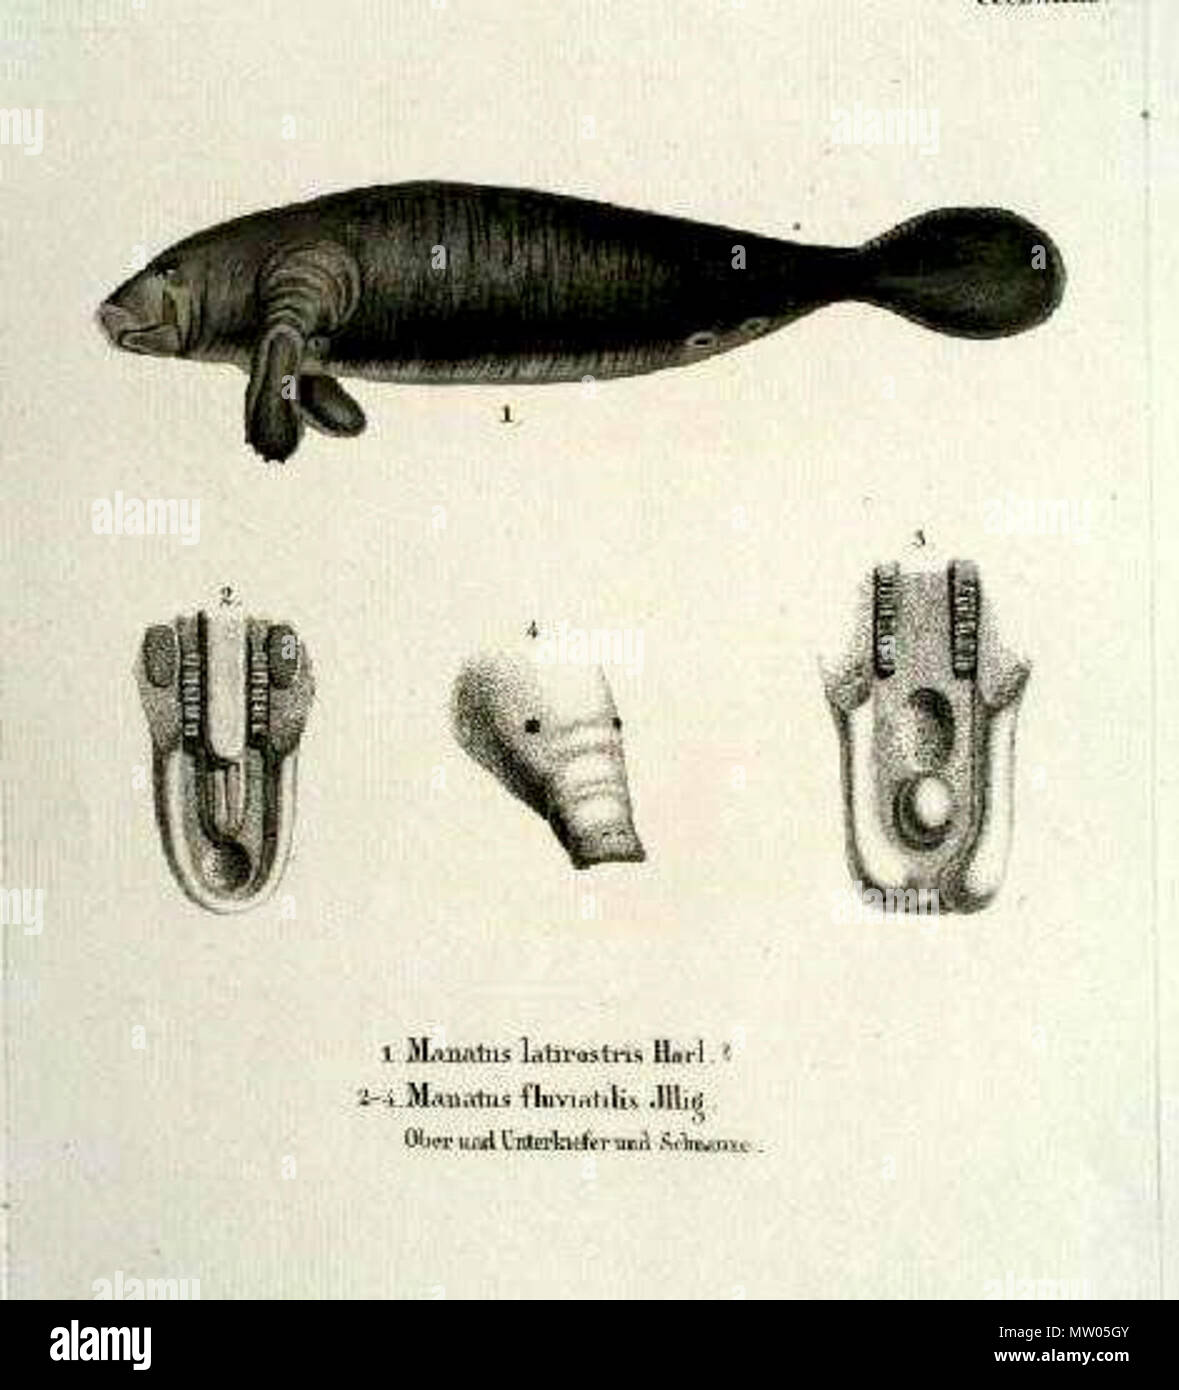 . Manatus latirostris Harl, Manatus fluviatilis Jllg. Fossilworks PaleoDB link: Manatus latirostris equals Trichechus manatus latirostris Note: Manatus fluviatilis ILLIGER, Abhandl. d. Kön. Akad. d. Wissens. in Berlin, 1809-1811, p. 110. This name, given without diagnosis, appears with M. americanus in a list of South American mammals and is a en:nomen nudum.[1] . Etching, time of origin: ca. 1835. Johann Andreas Fleischmann (1811-1878) 562 Sirenia latirostris and Sirenia fluvatilis Stock Photo